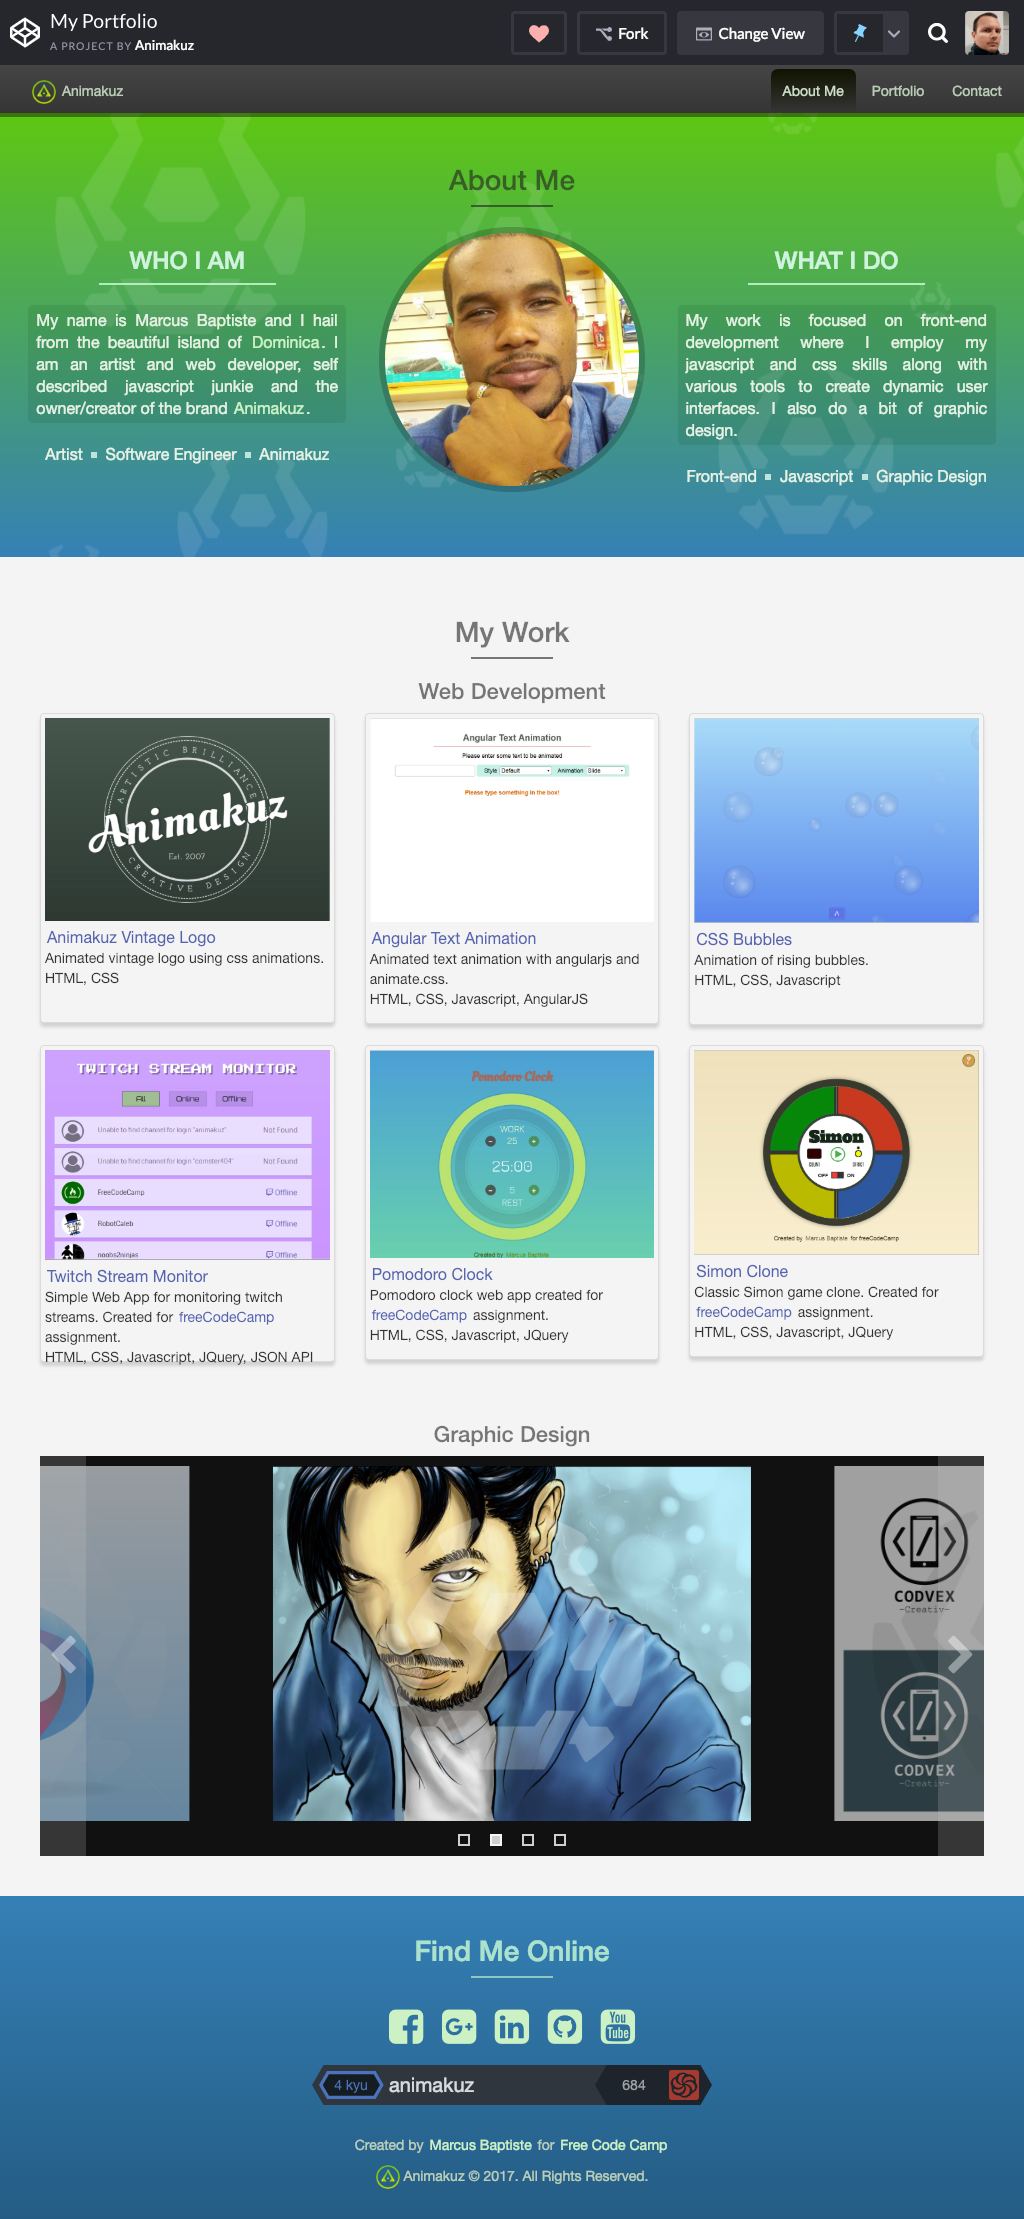 Animakuz implemented his personal portfolio as a CodePen project.